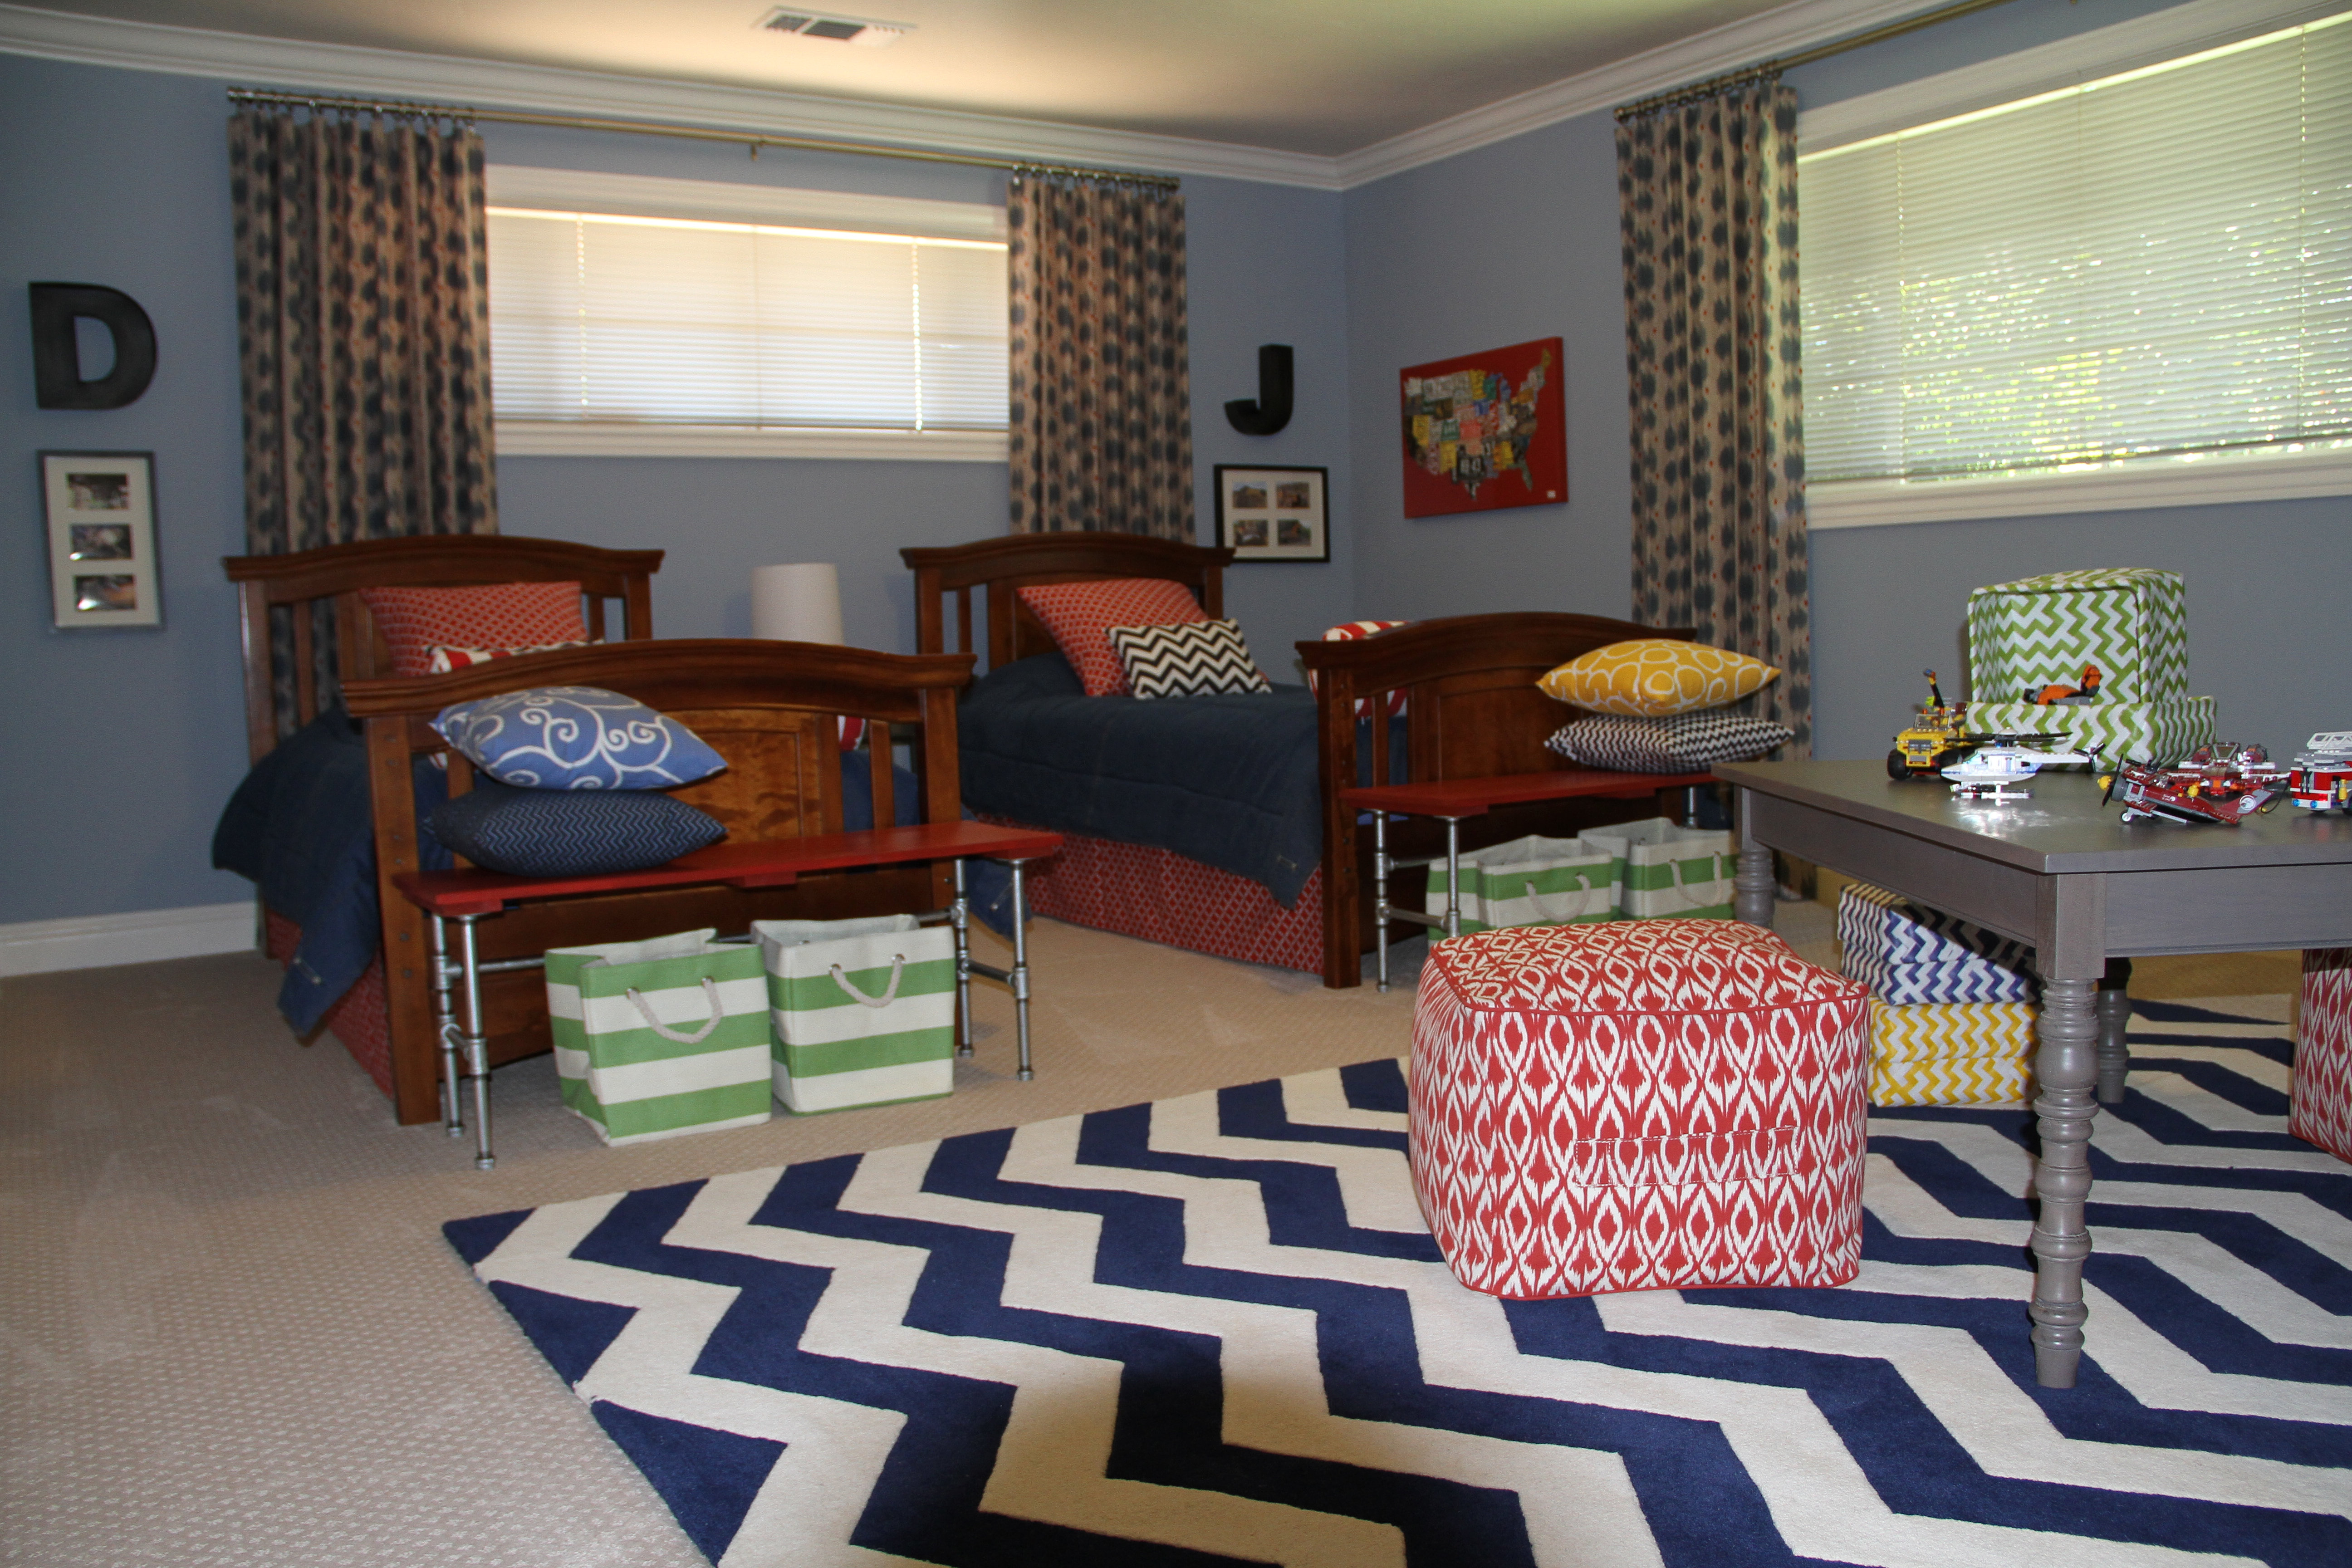 Tina jack designs brothers bedroom 5 for Brothers bedroom ideas